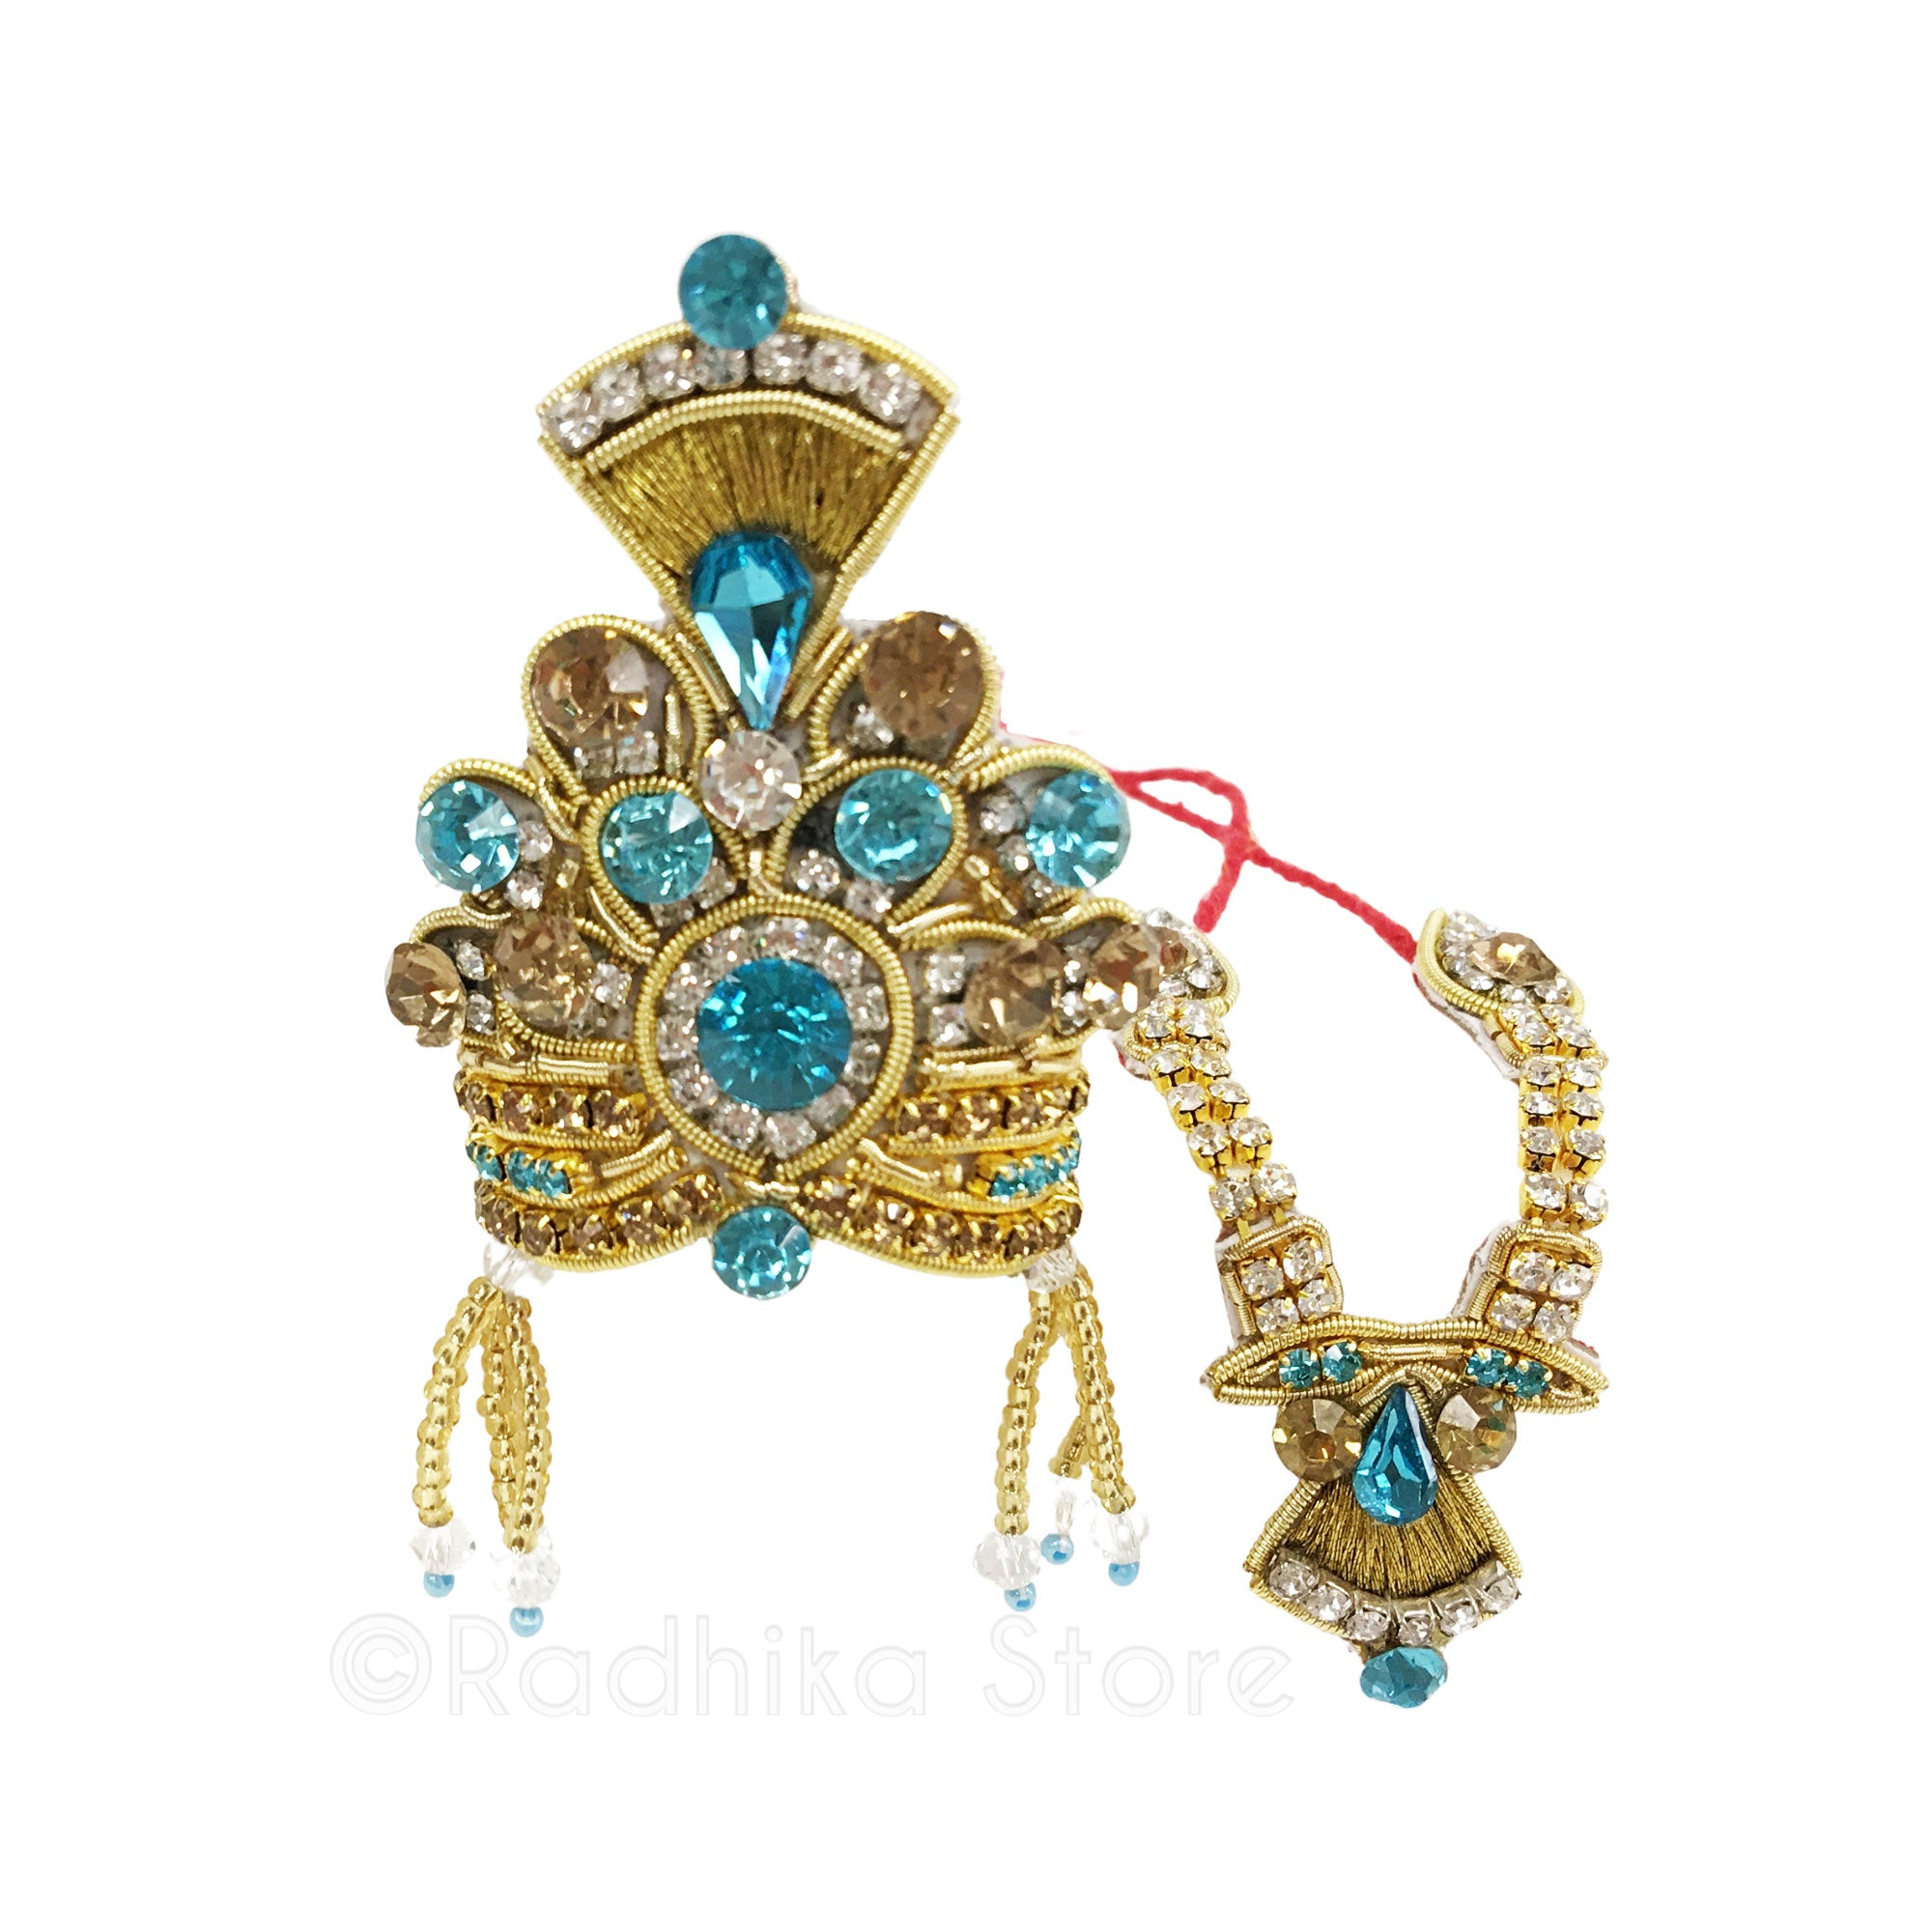 Golden Peacock Feather in Yamuna - Deity Crown and Necklace Set